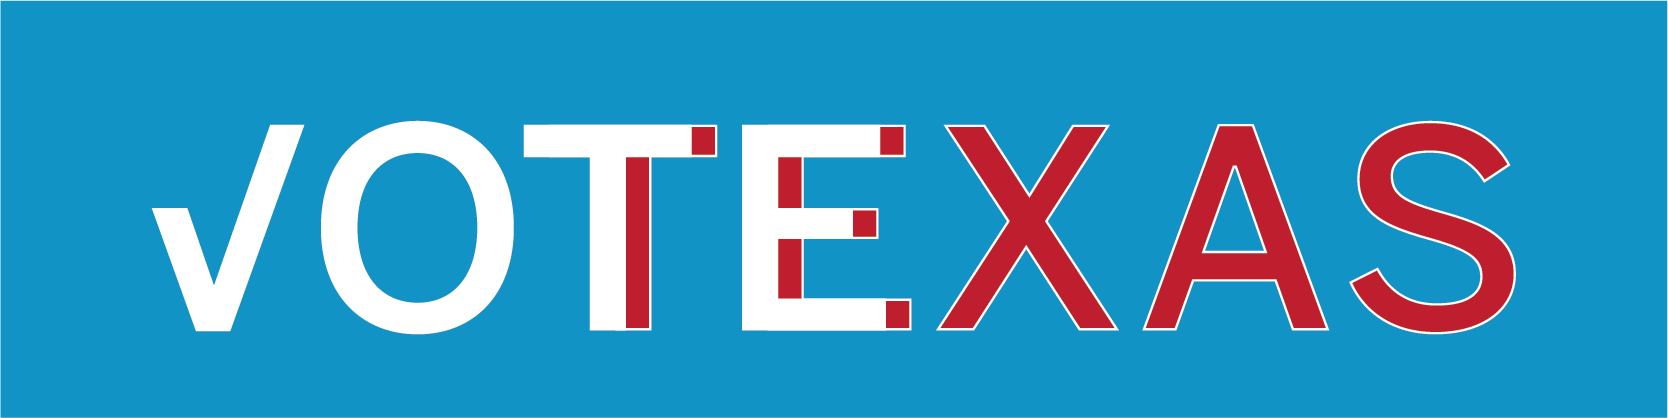 TxA18_Vote-Texas-04